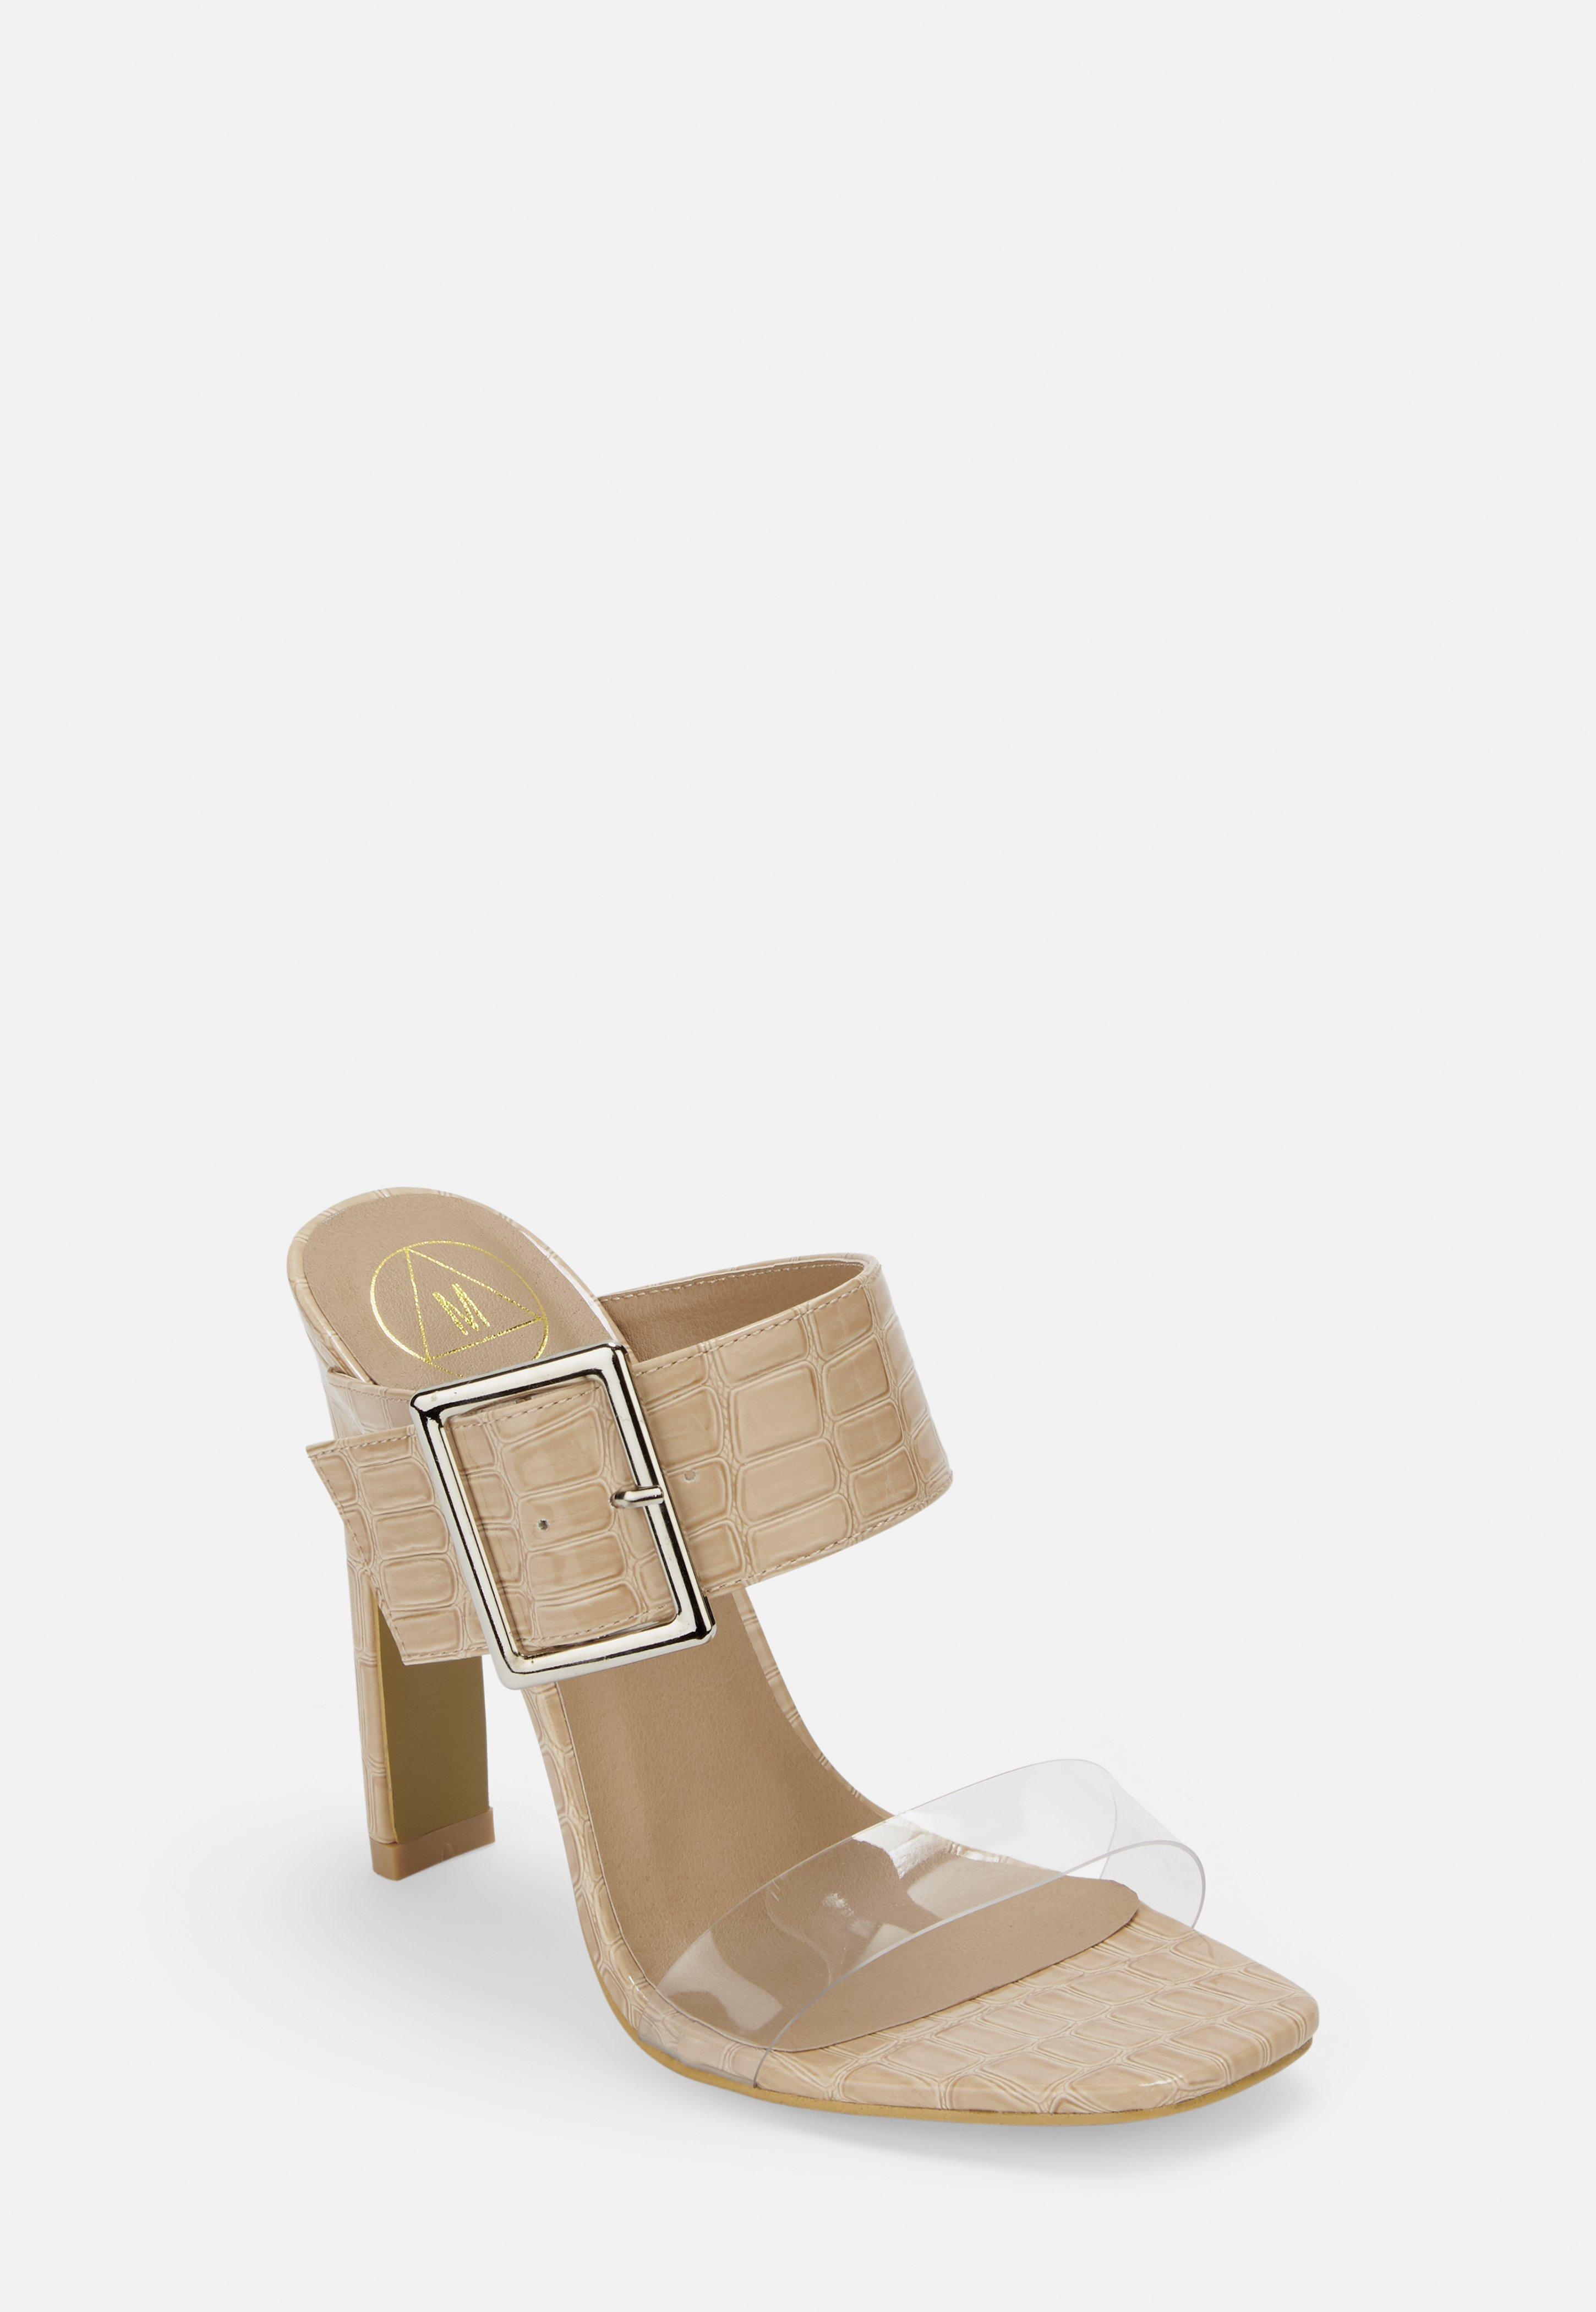 65a8a655db6 Nude Croc Texture Clear Mules